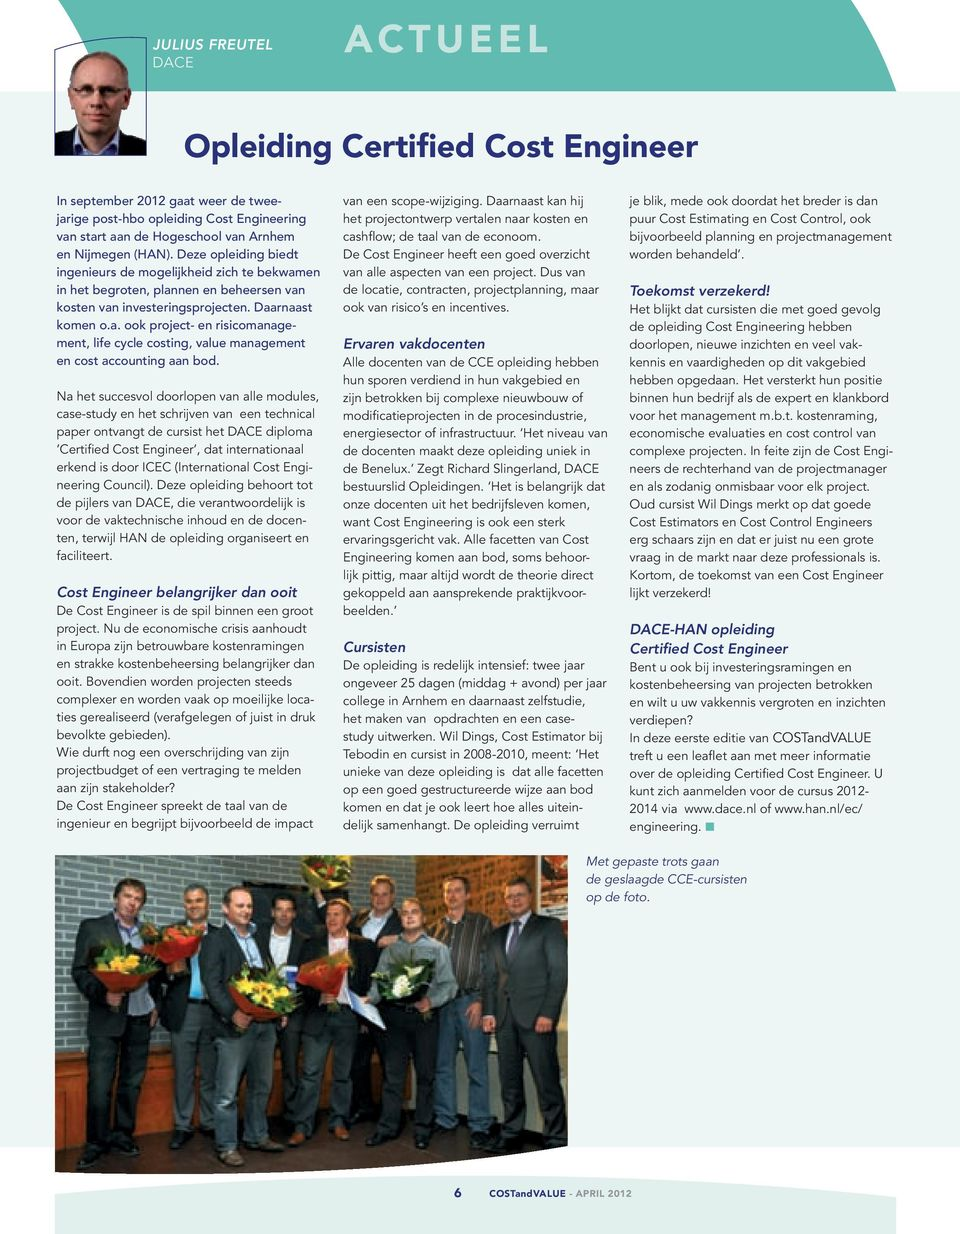 Na het succesvol doorlopen van alle modules, case-study en het schrijven van een technical paper ontvangt de cursist het DACE diploma Certified Cost Engineer, dat internationaal erkend is door ICEC